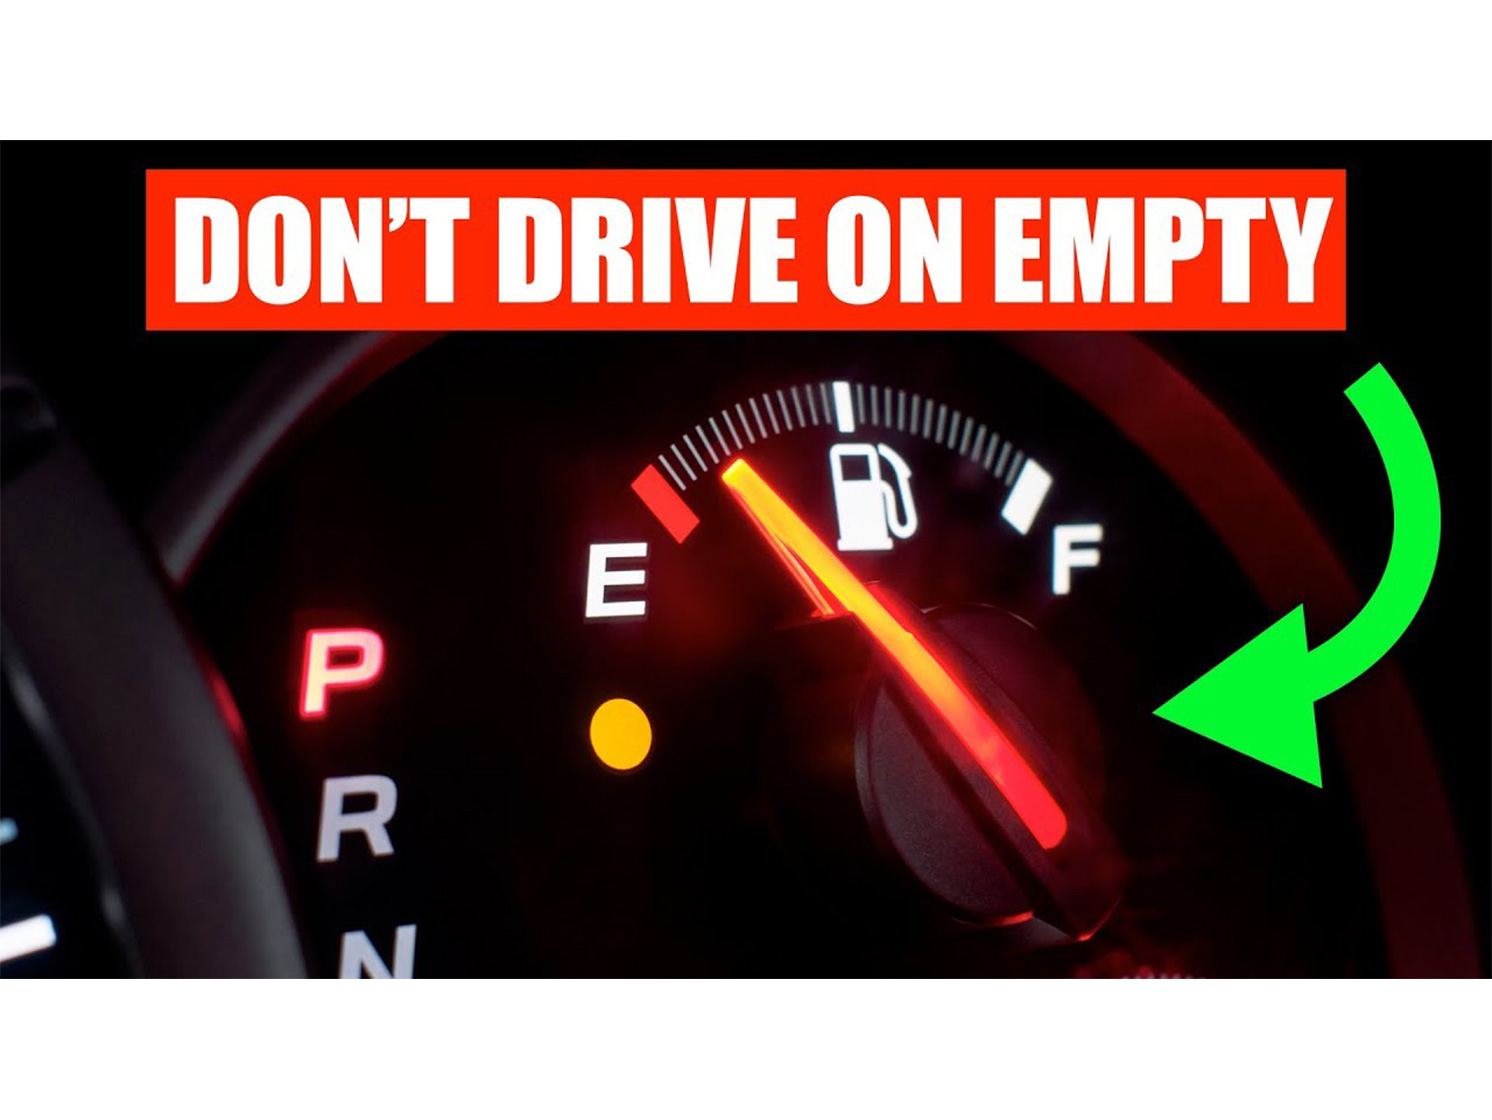 Is running your gas tank to empty really that dangerous? thumbnail